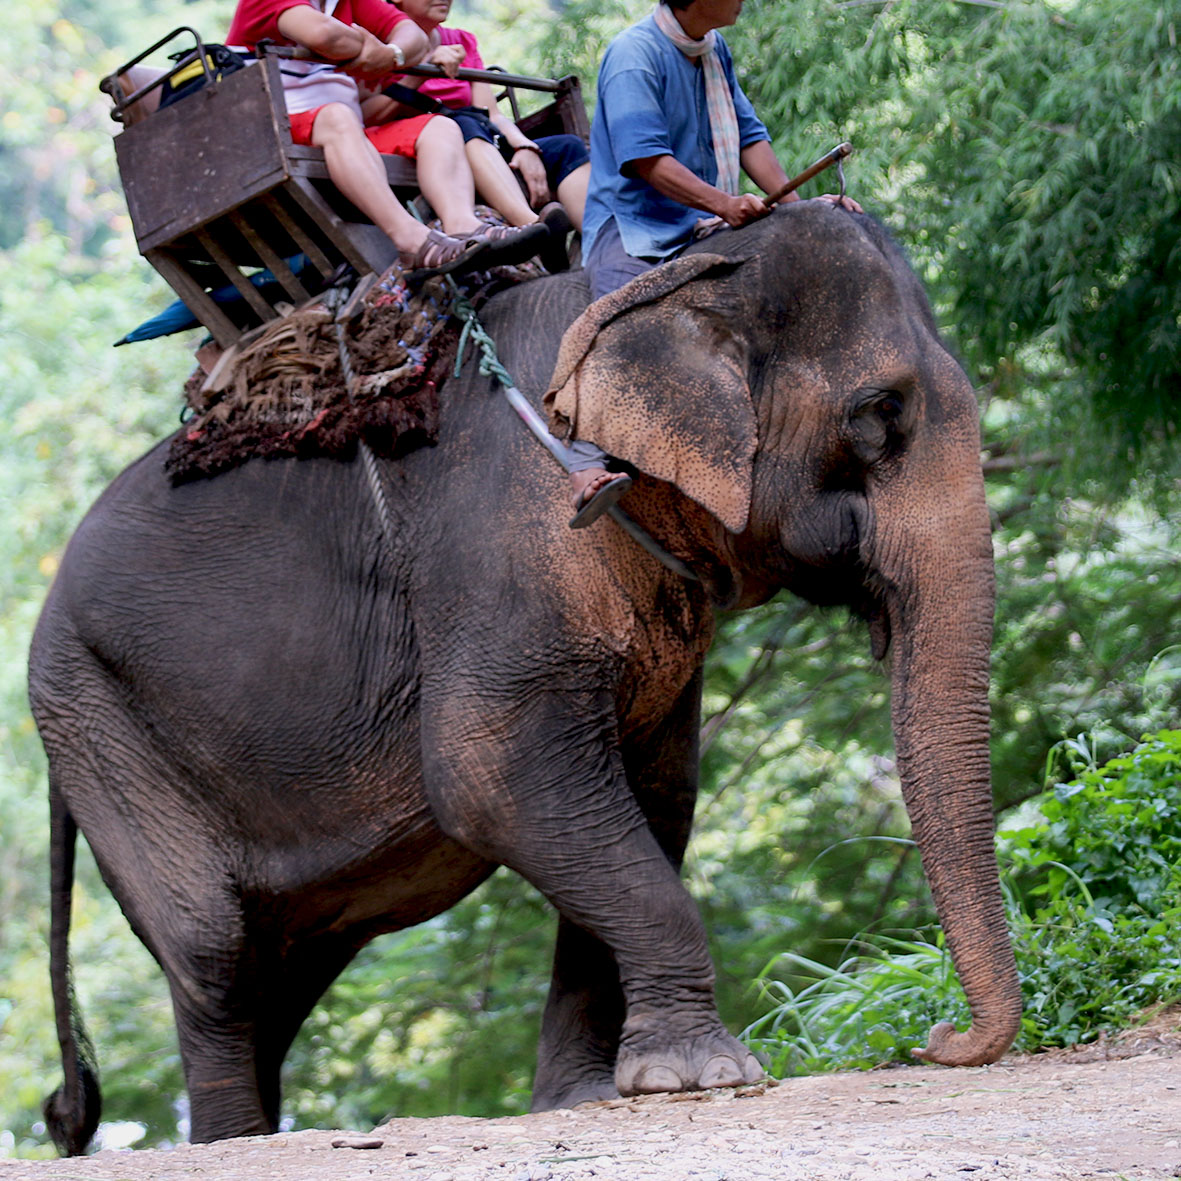 tourists riding an elephant